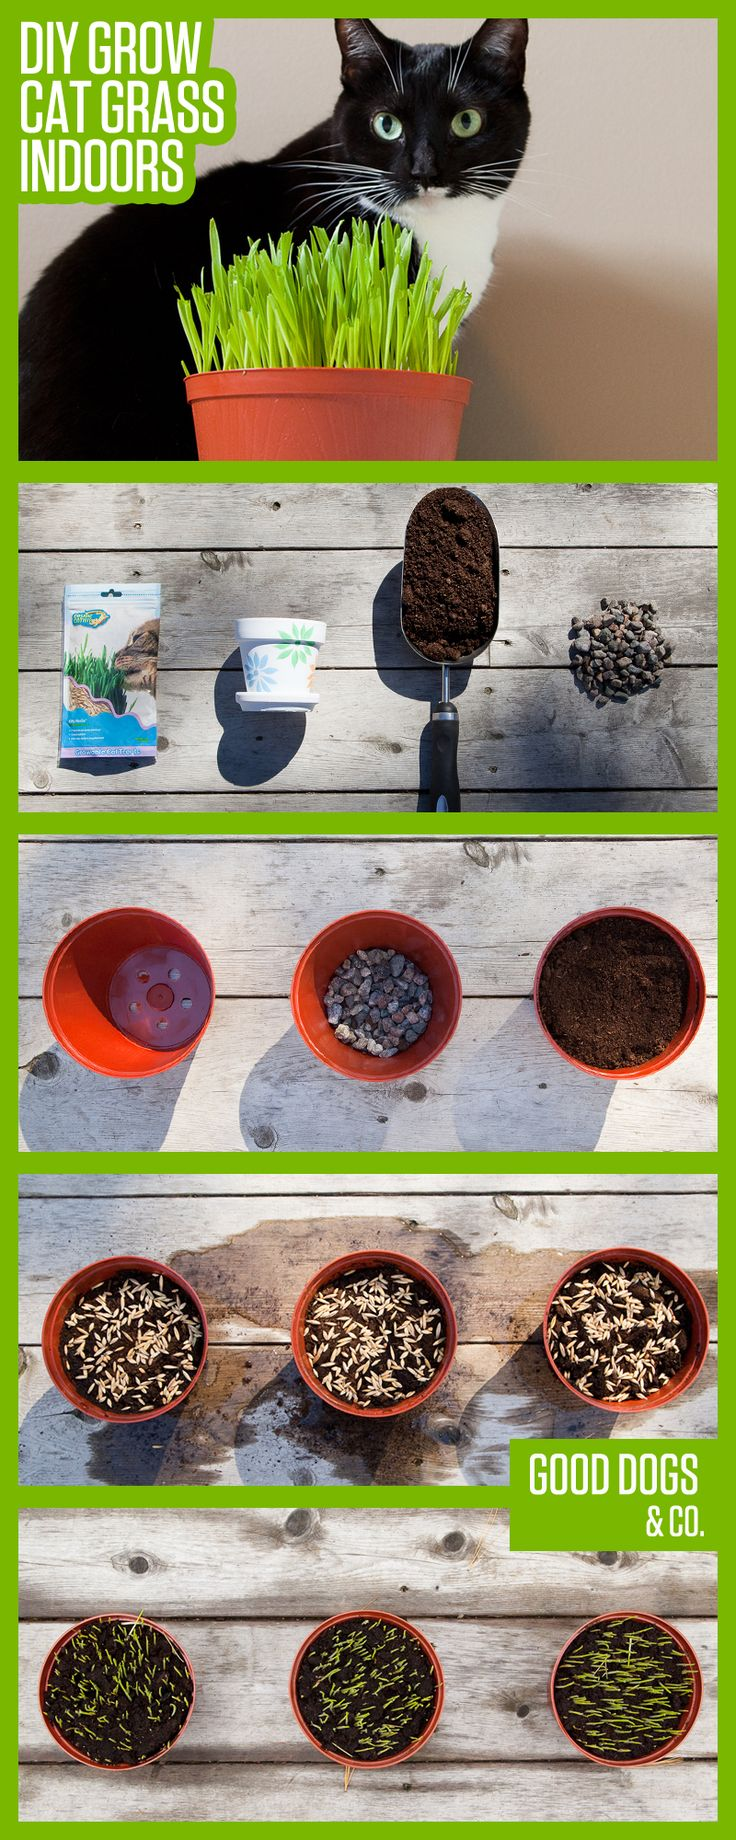 Super easy DIY to grow cat grass indoors! Bring the outside in and let your cat enjoy a healthy snack!